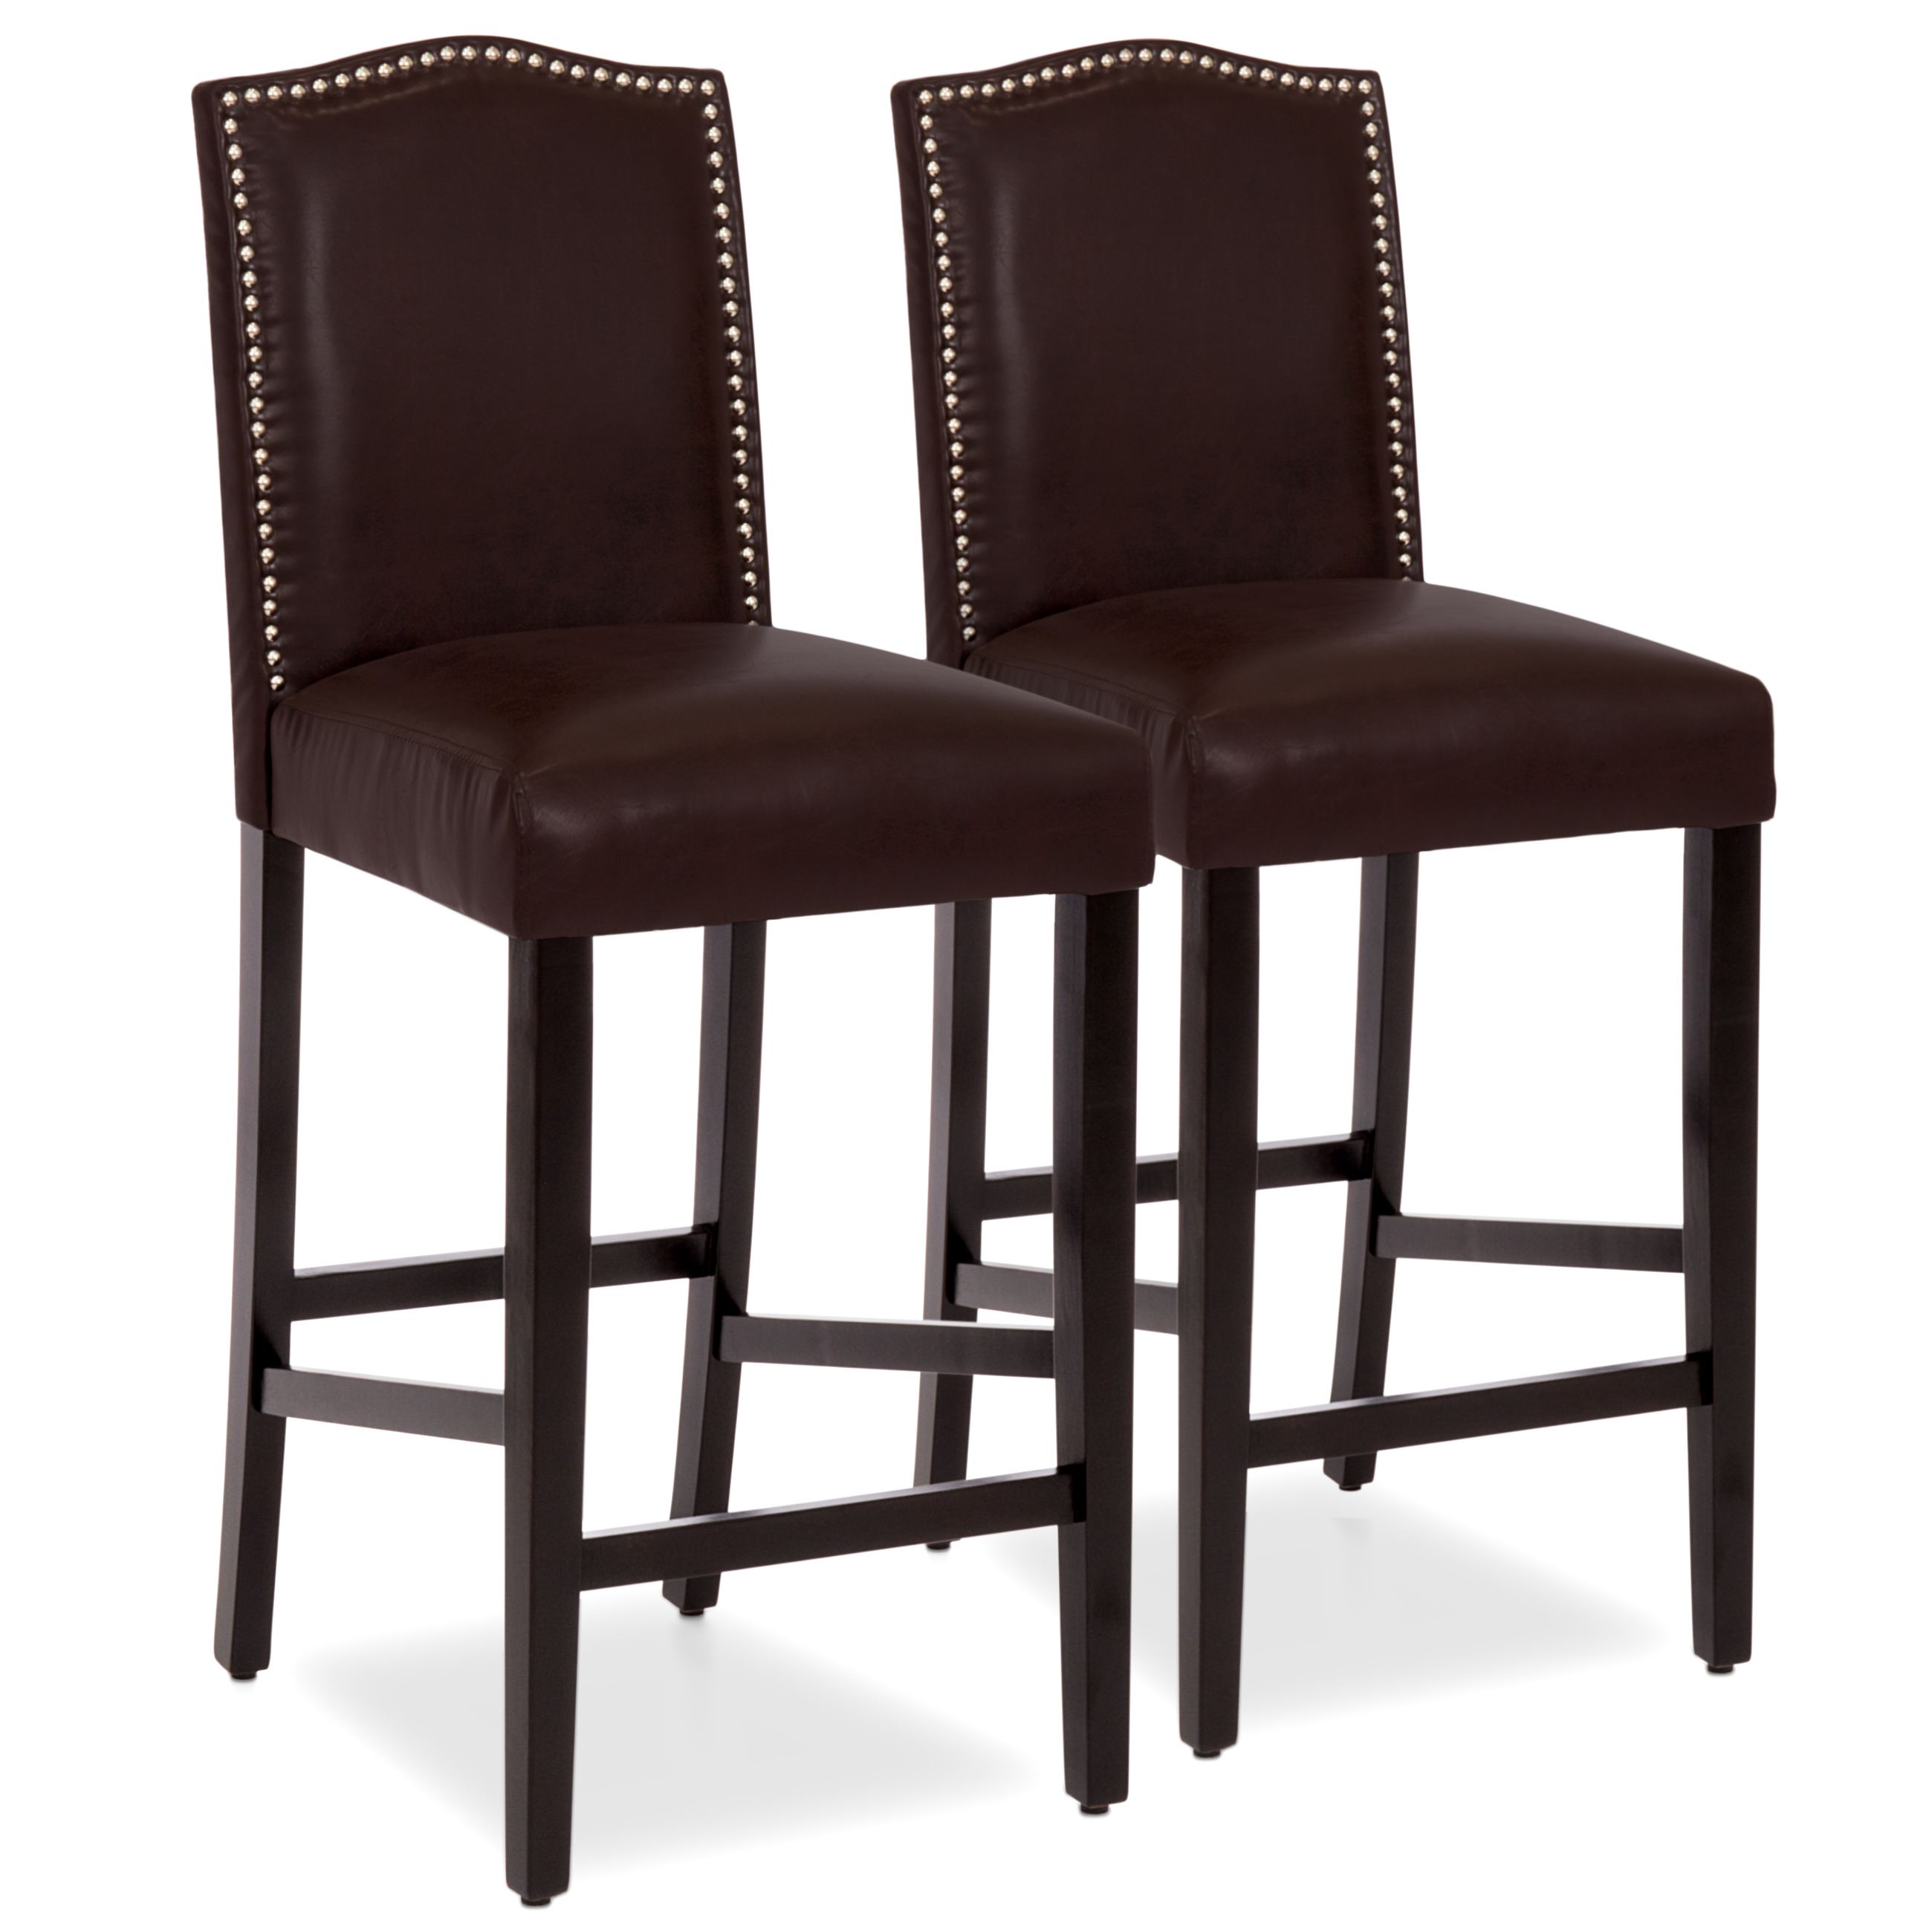 Best Choice Products Set Of 2 30in Contemporary Faux Leather Counter Height Armless Backed Accent Breakfast Bar Stool Chairs For Dining Room Kitchen